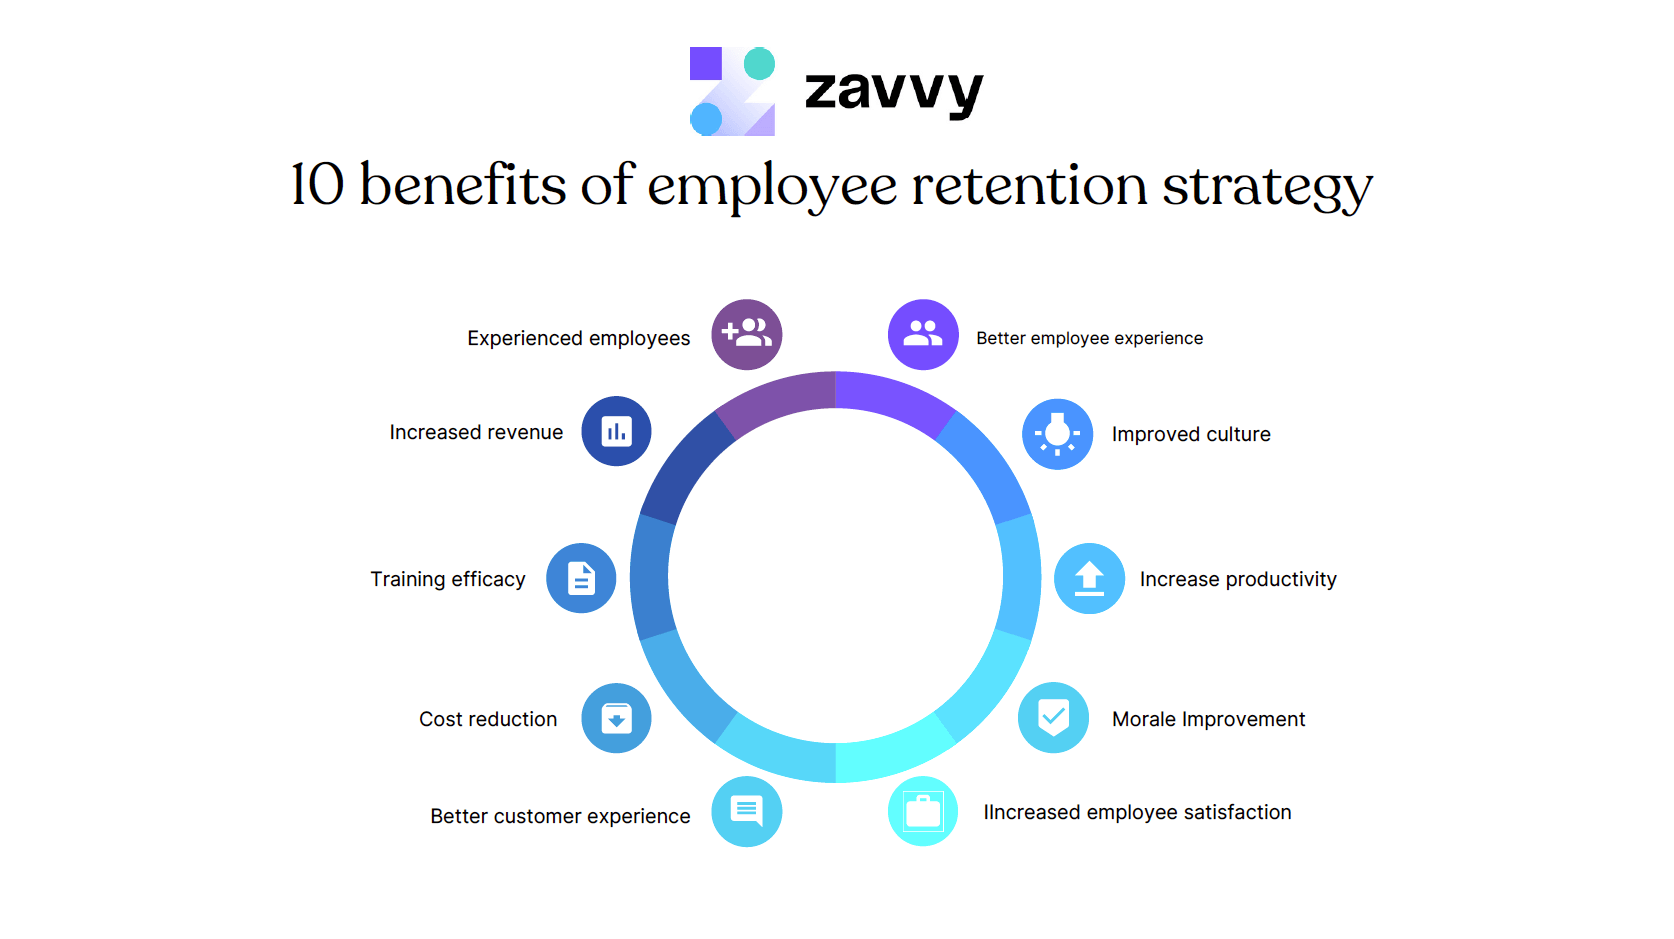 10 benefits of employee retention. Starting from cost reduction until improved employee satisfaction